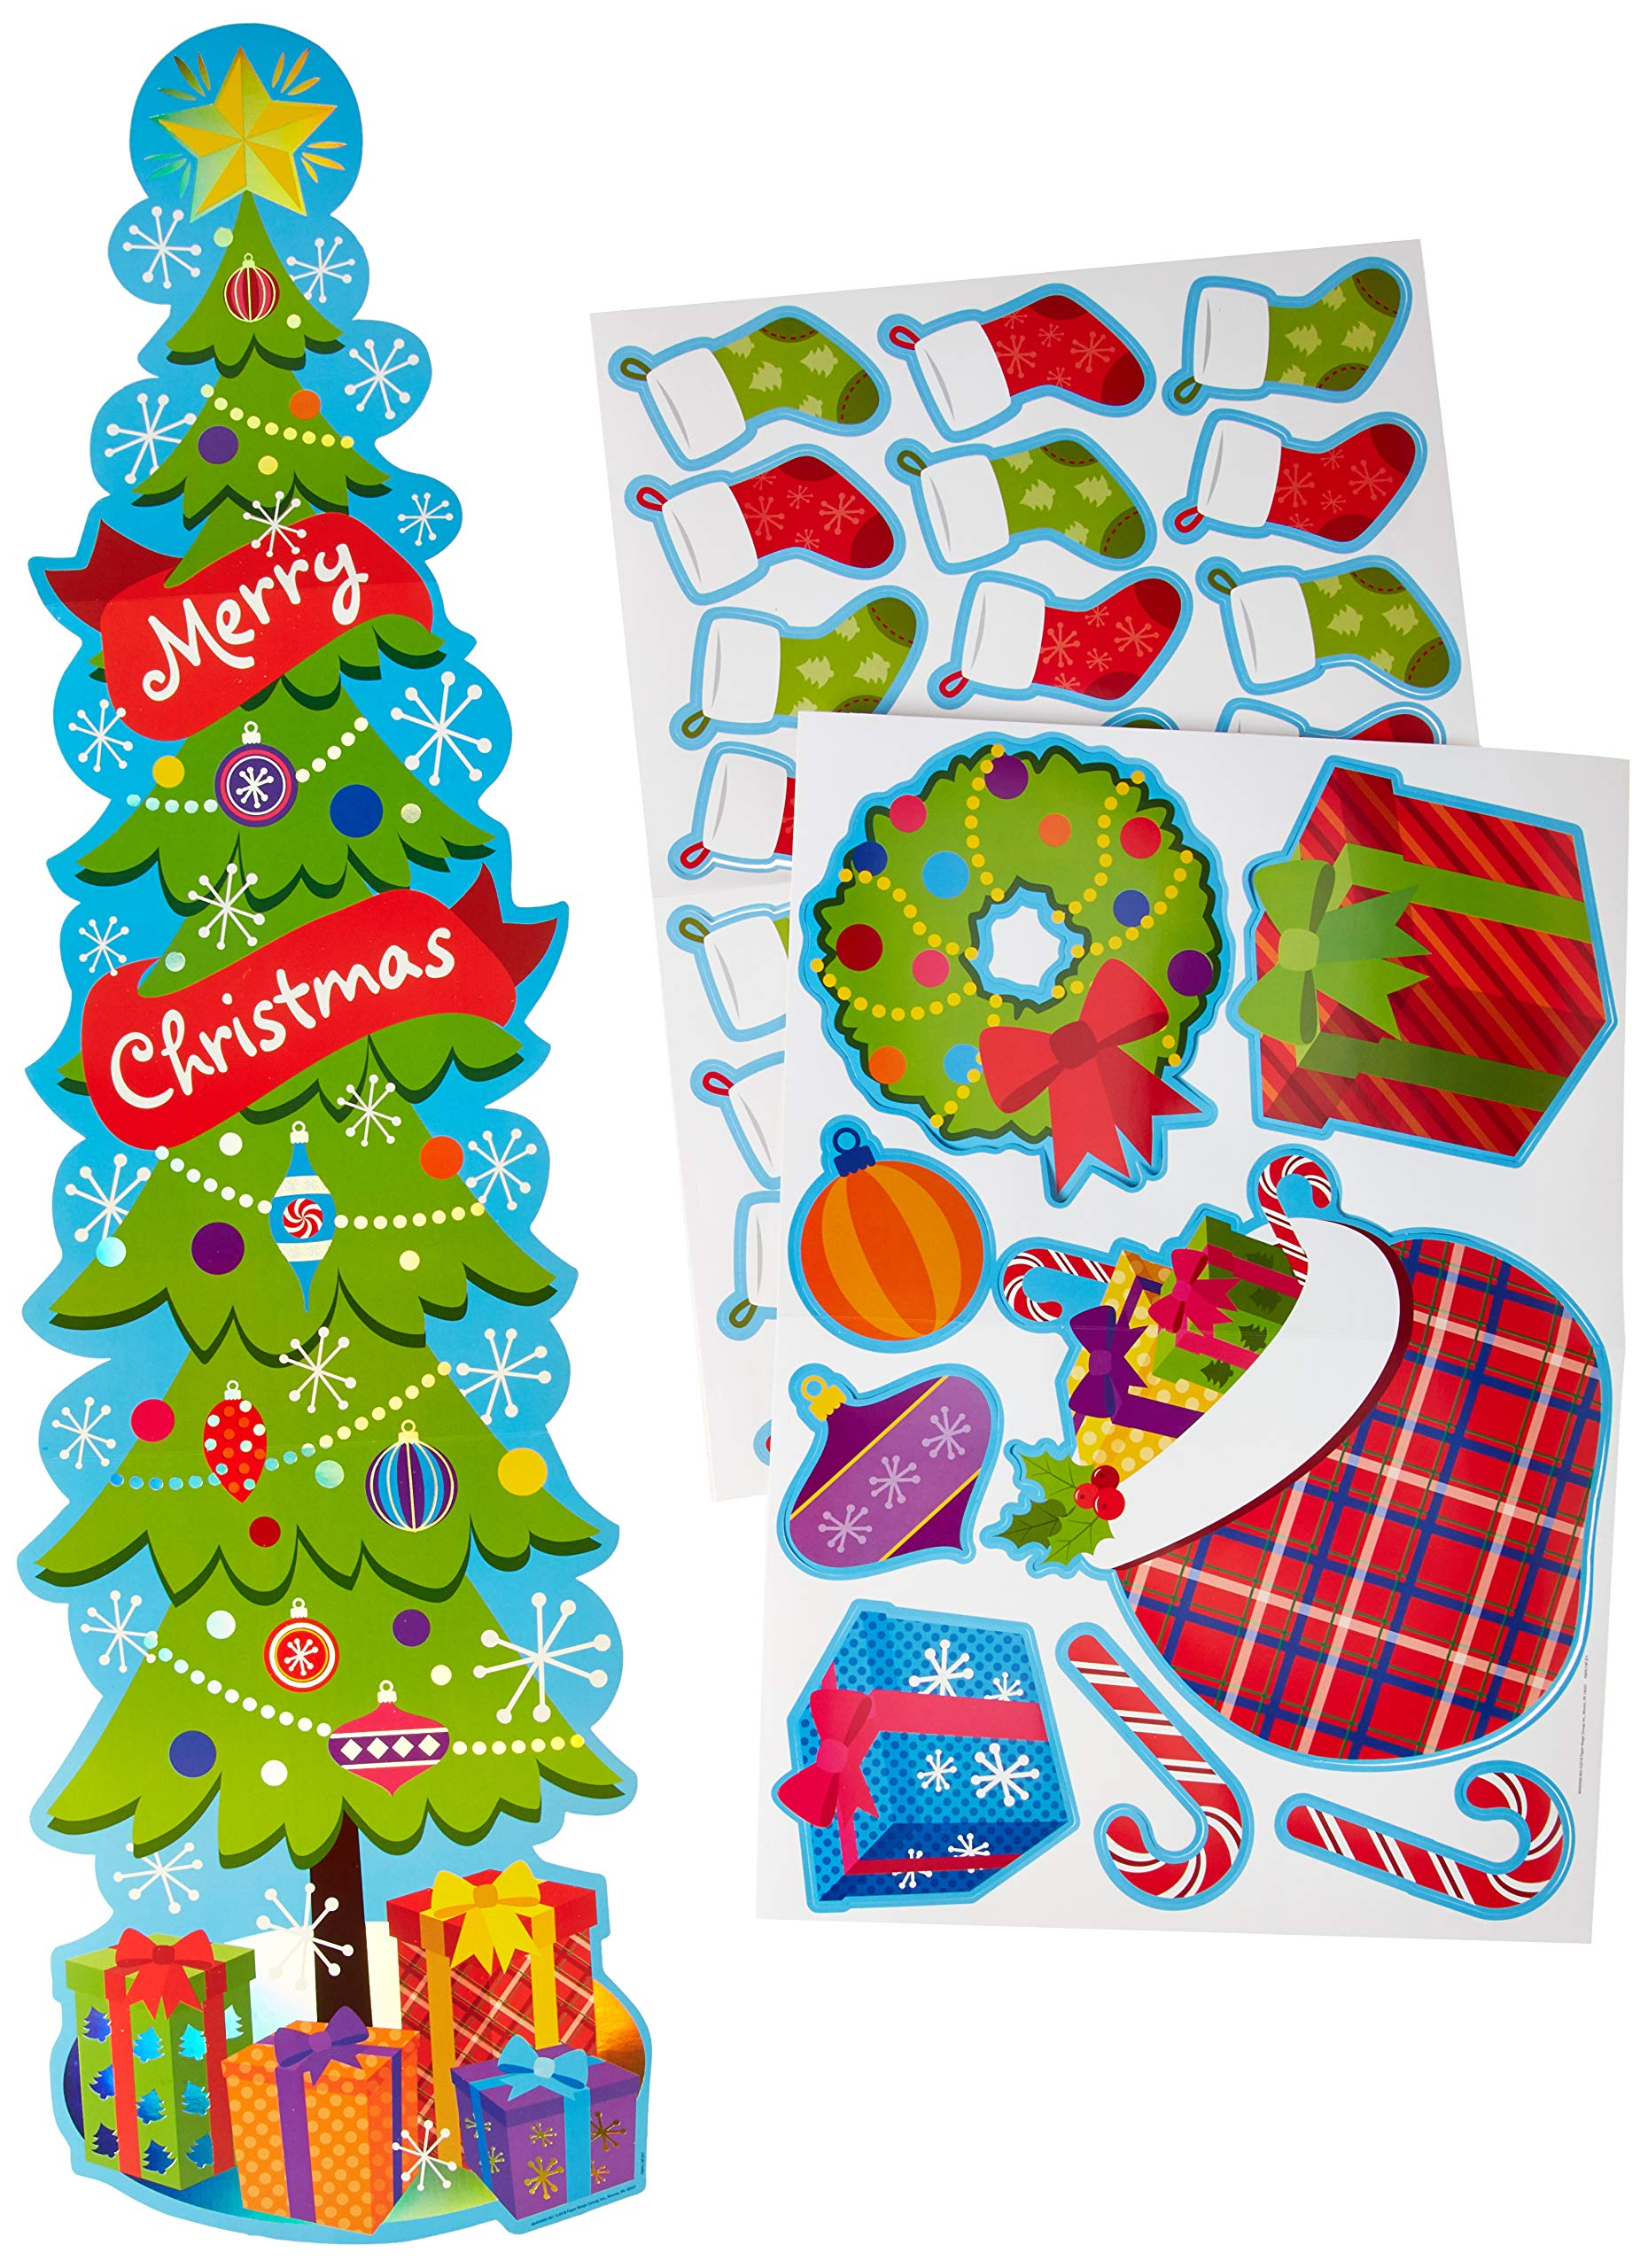 EUREKA Christmas and Holiday Season School and Classroom Door Décor Kit, 33pc by EUREKA